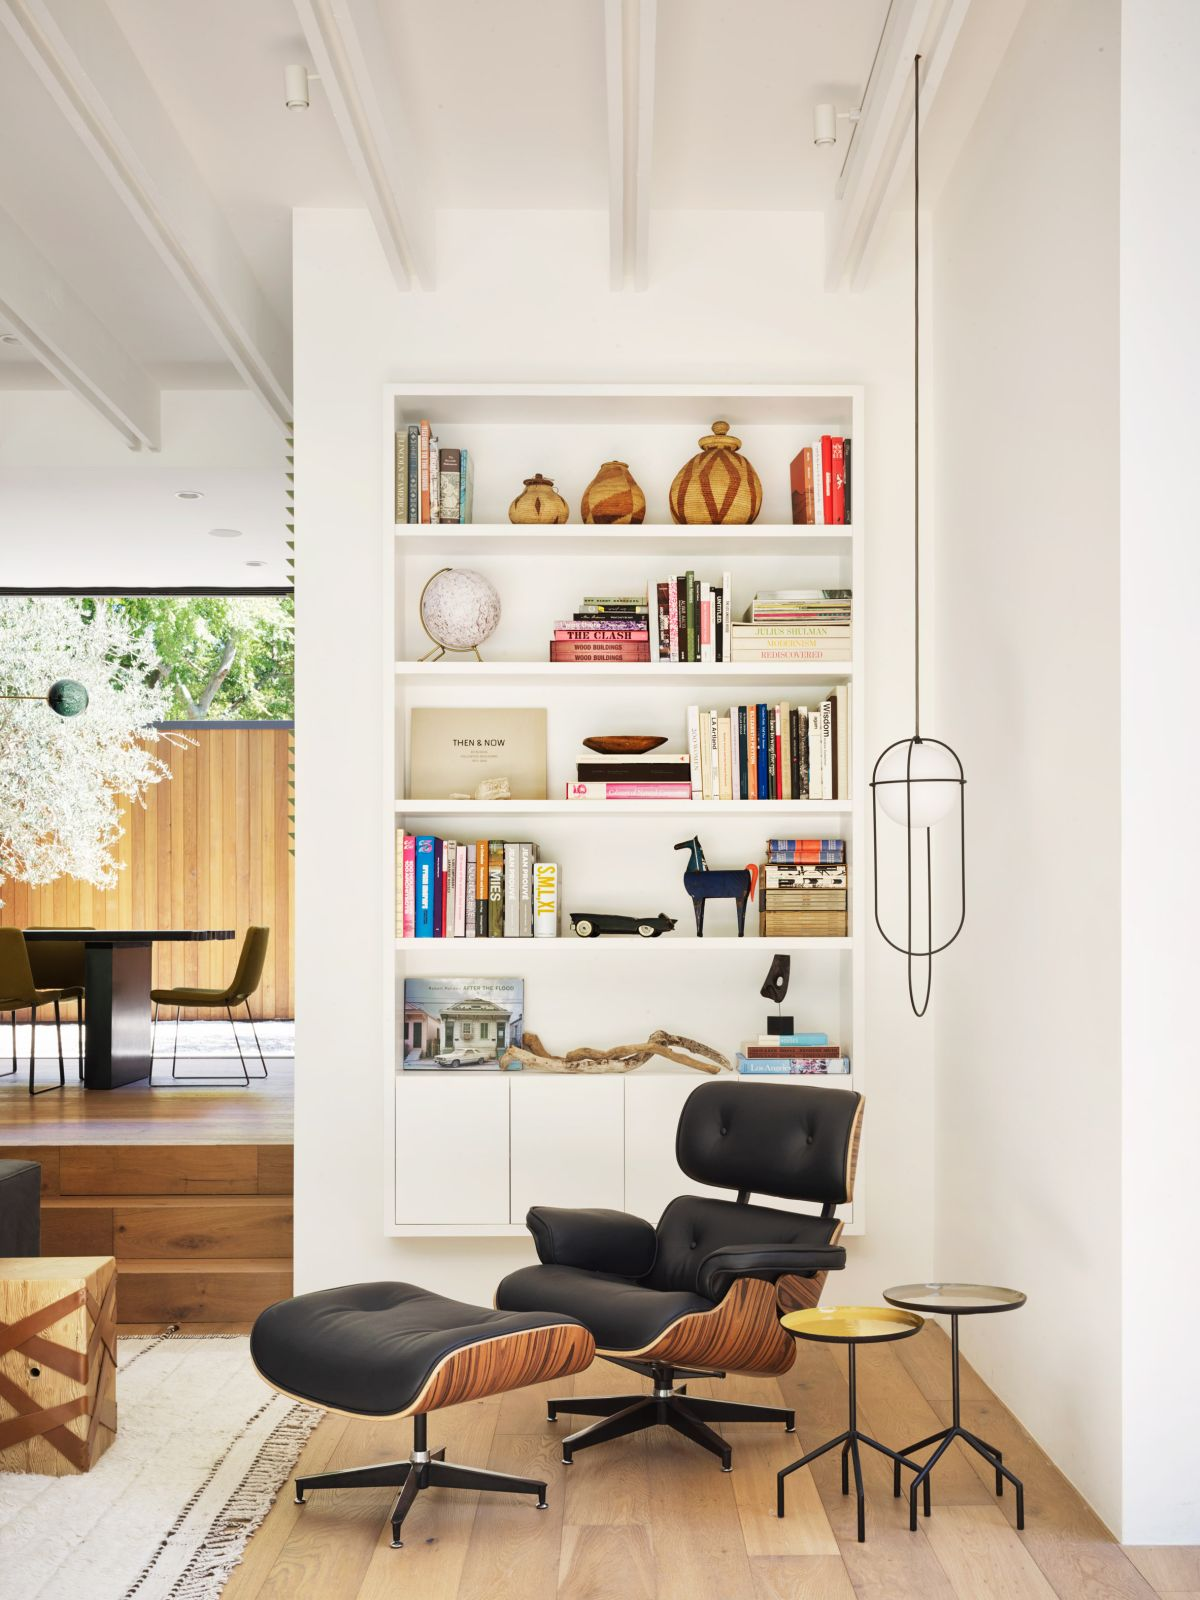 The interior rooms and seamlessly morphed into various large spaces with homogenous floor plans